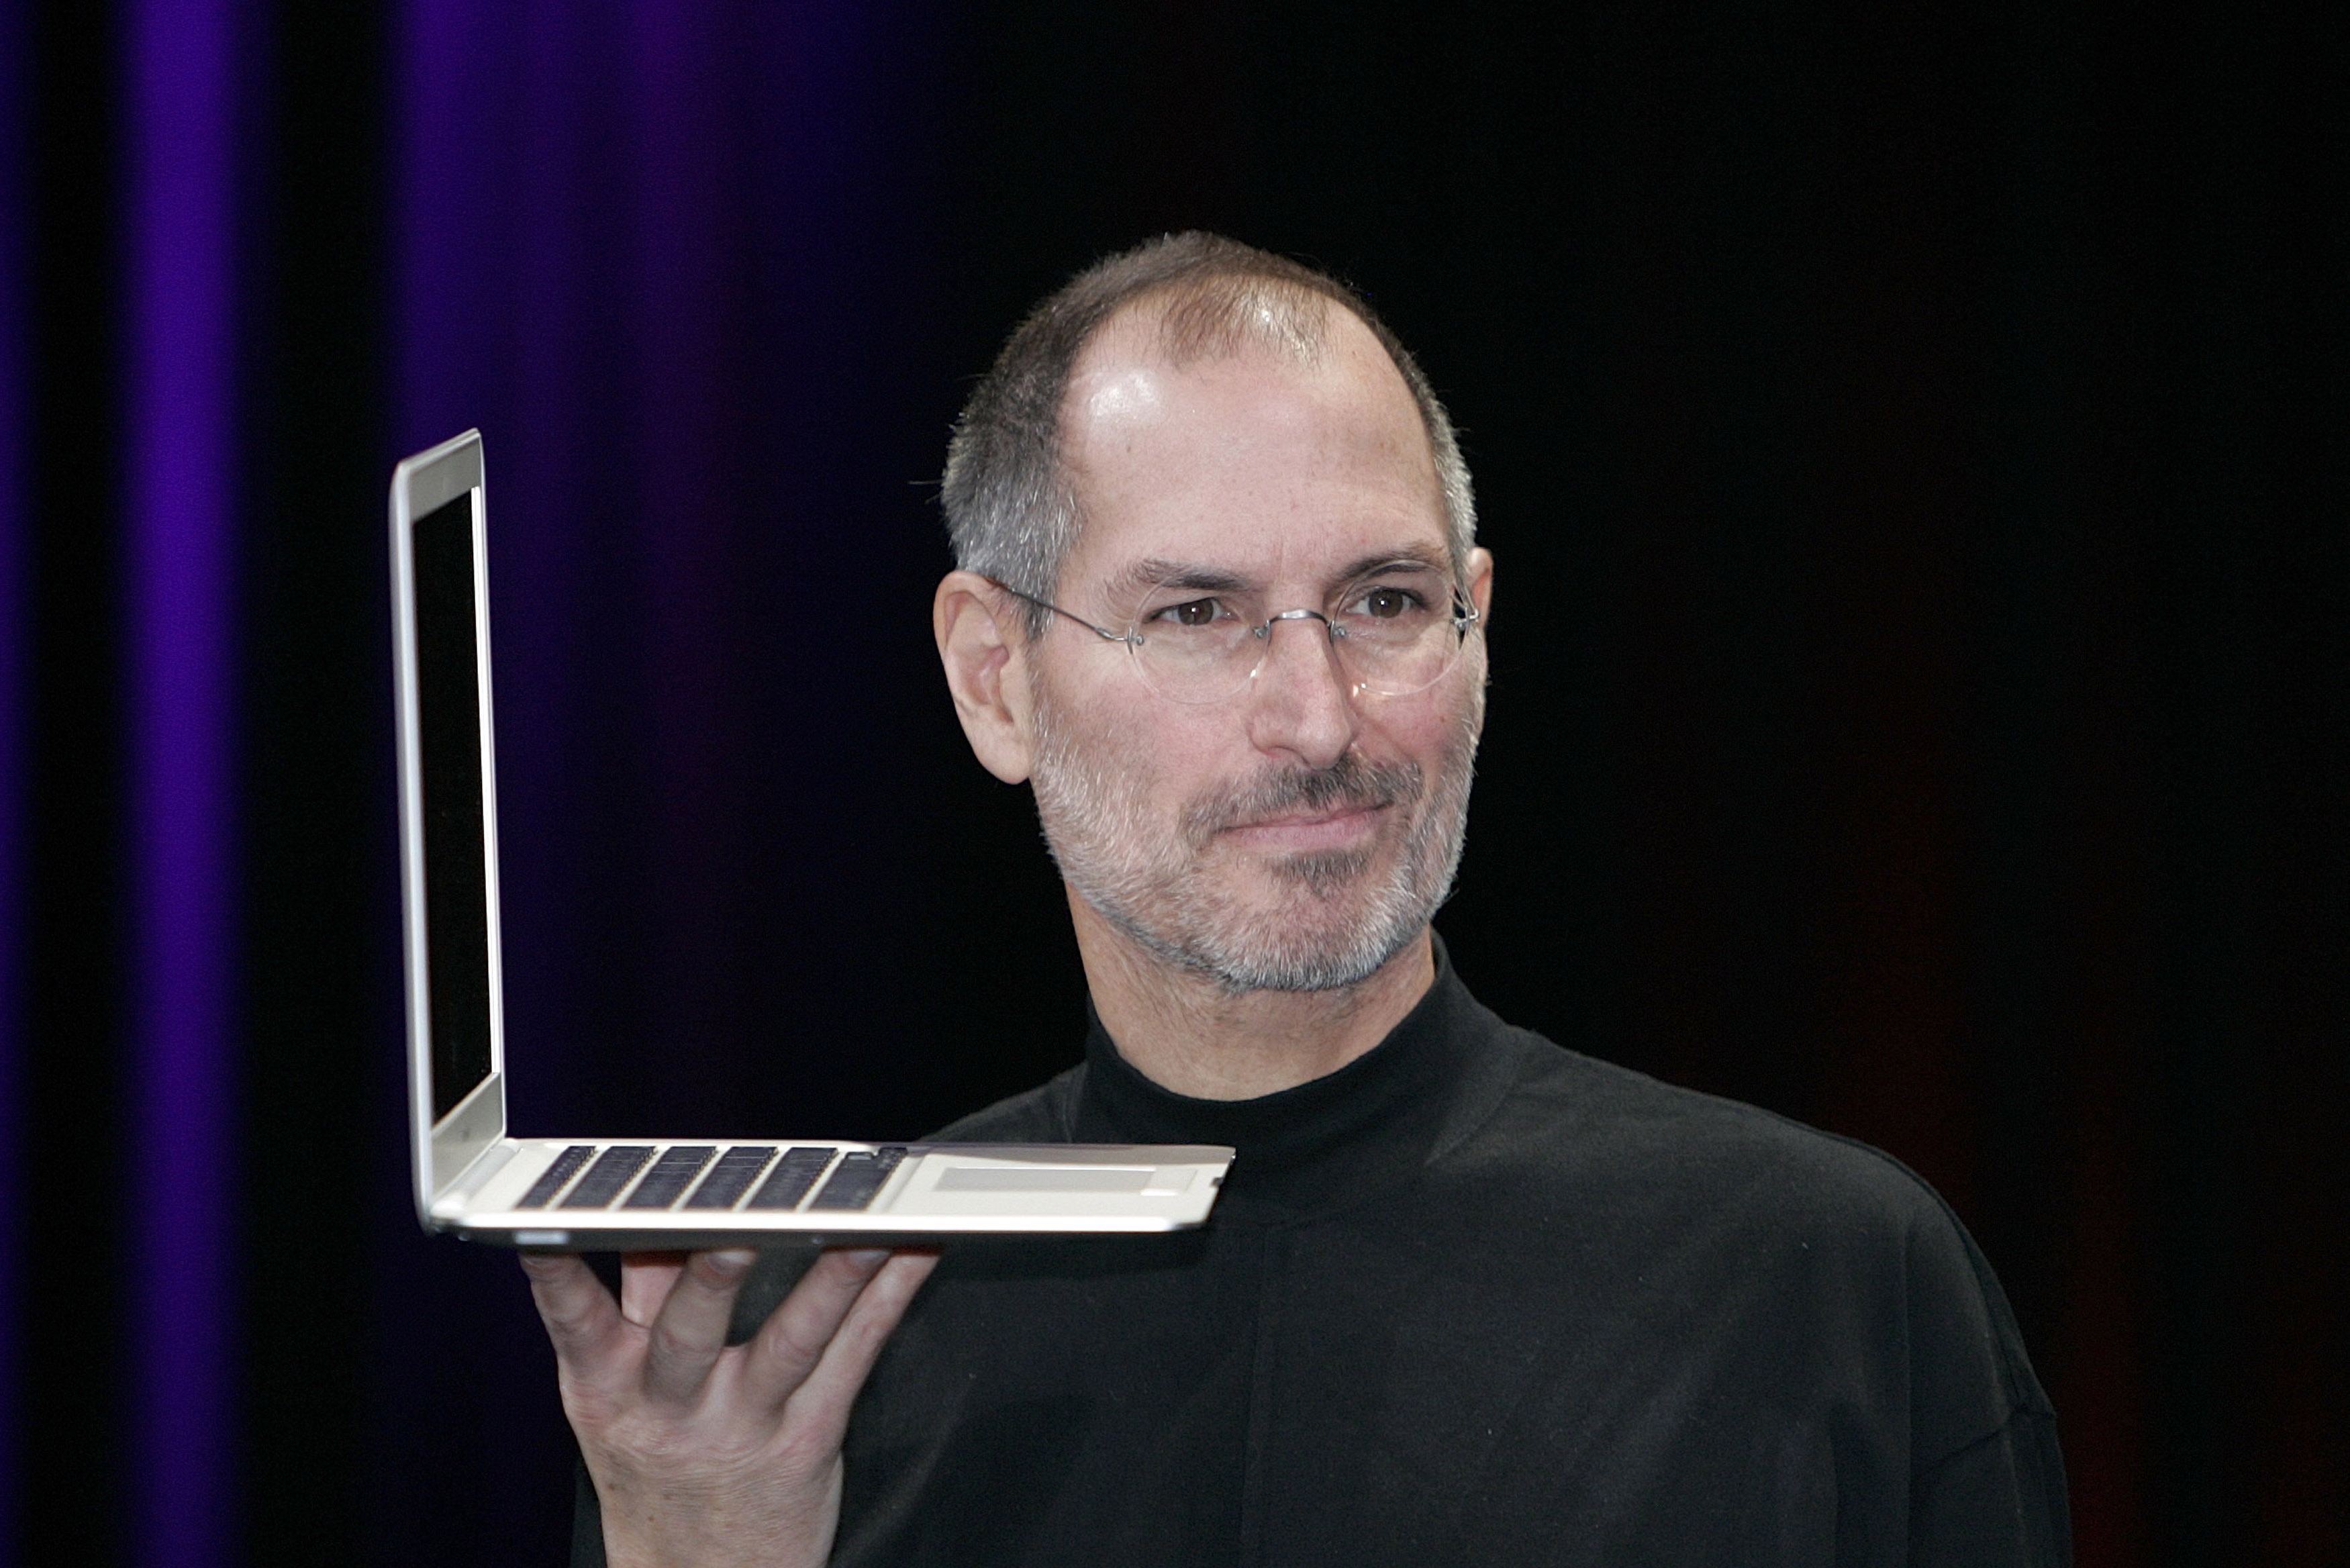 Jobs introducing MacBook Air at Macworld 2008